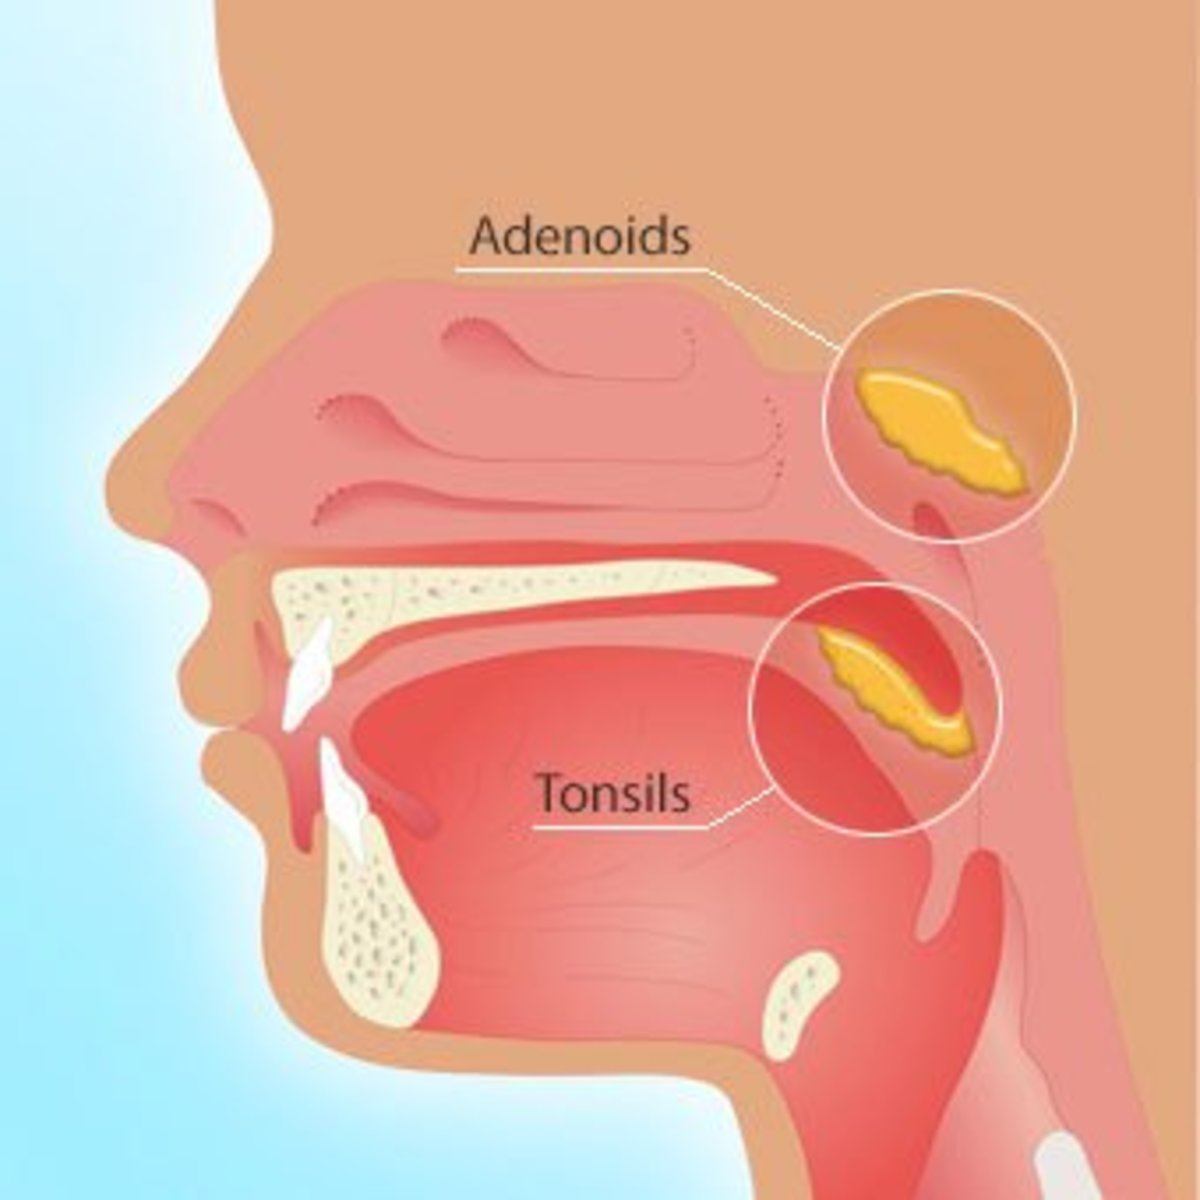 Signs And Symptoms: Does My Child Need Their Tonsils And Adenoids Removed?